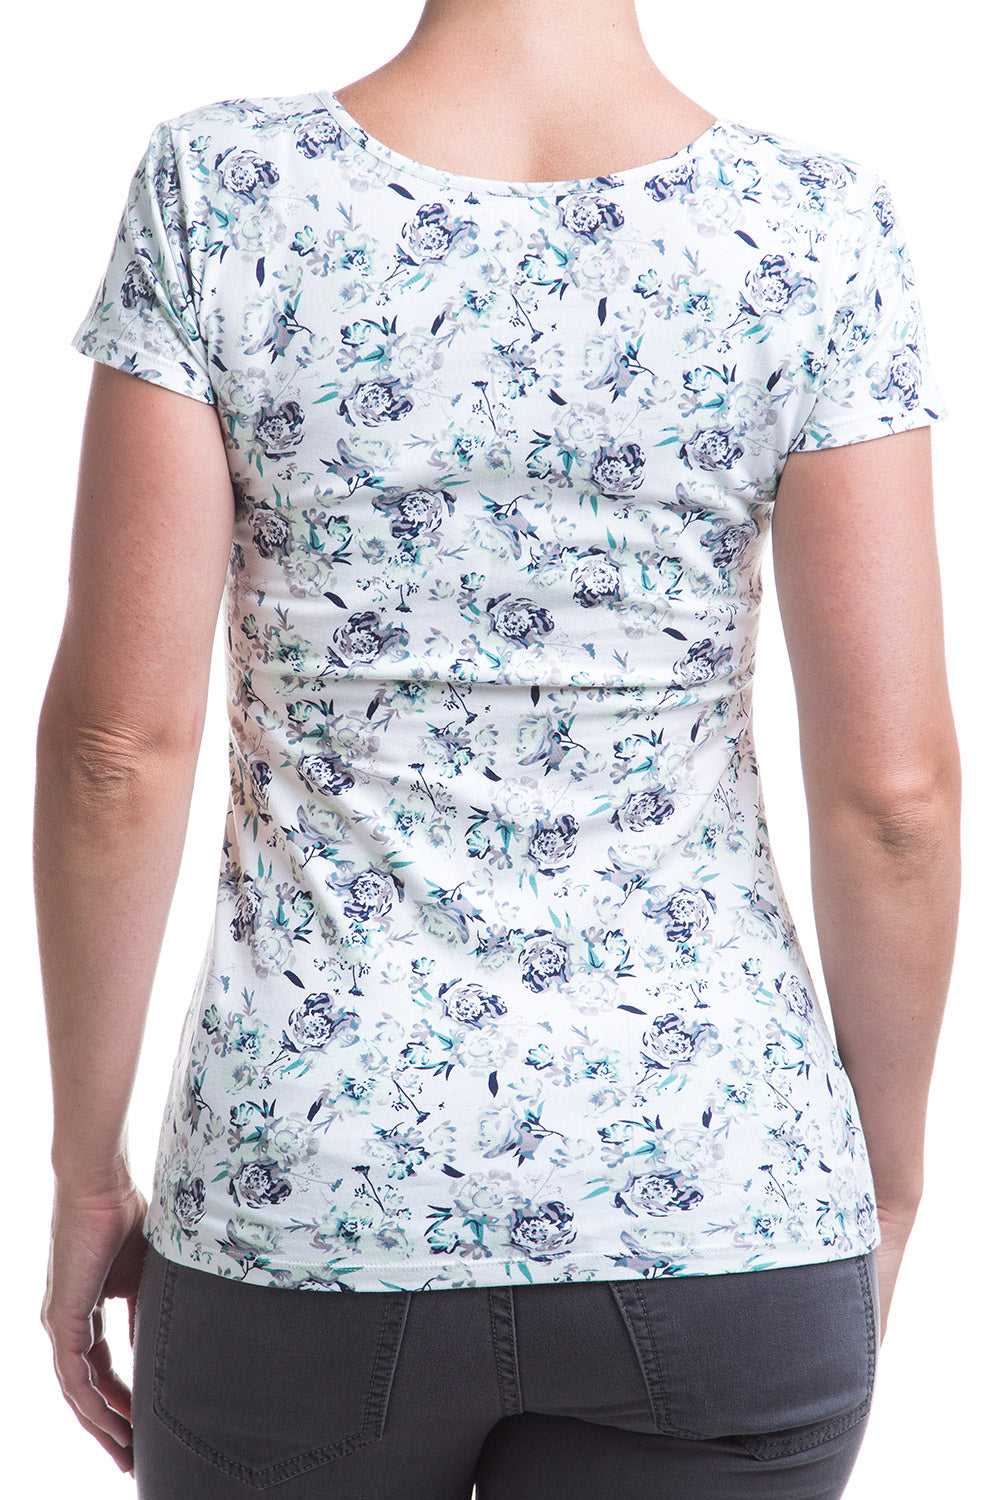 Type 2 Favorite Scoop Tee in Mint Floral